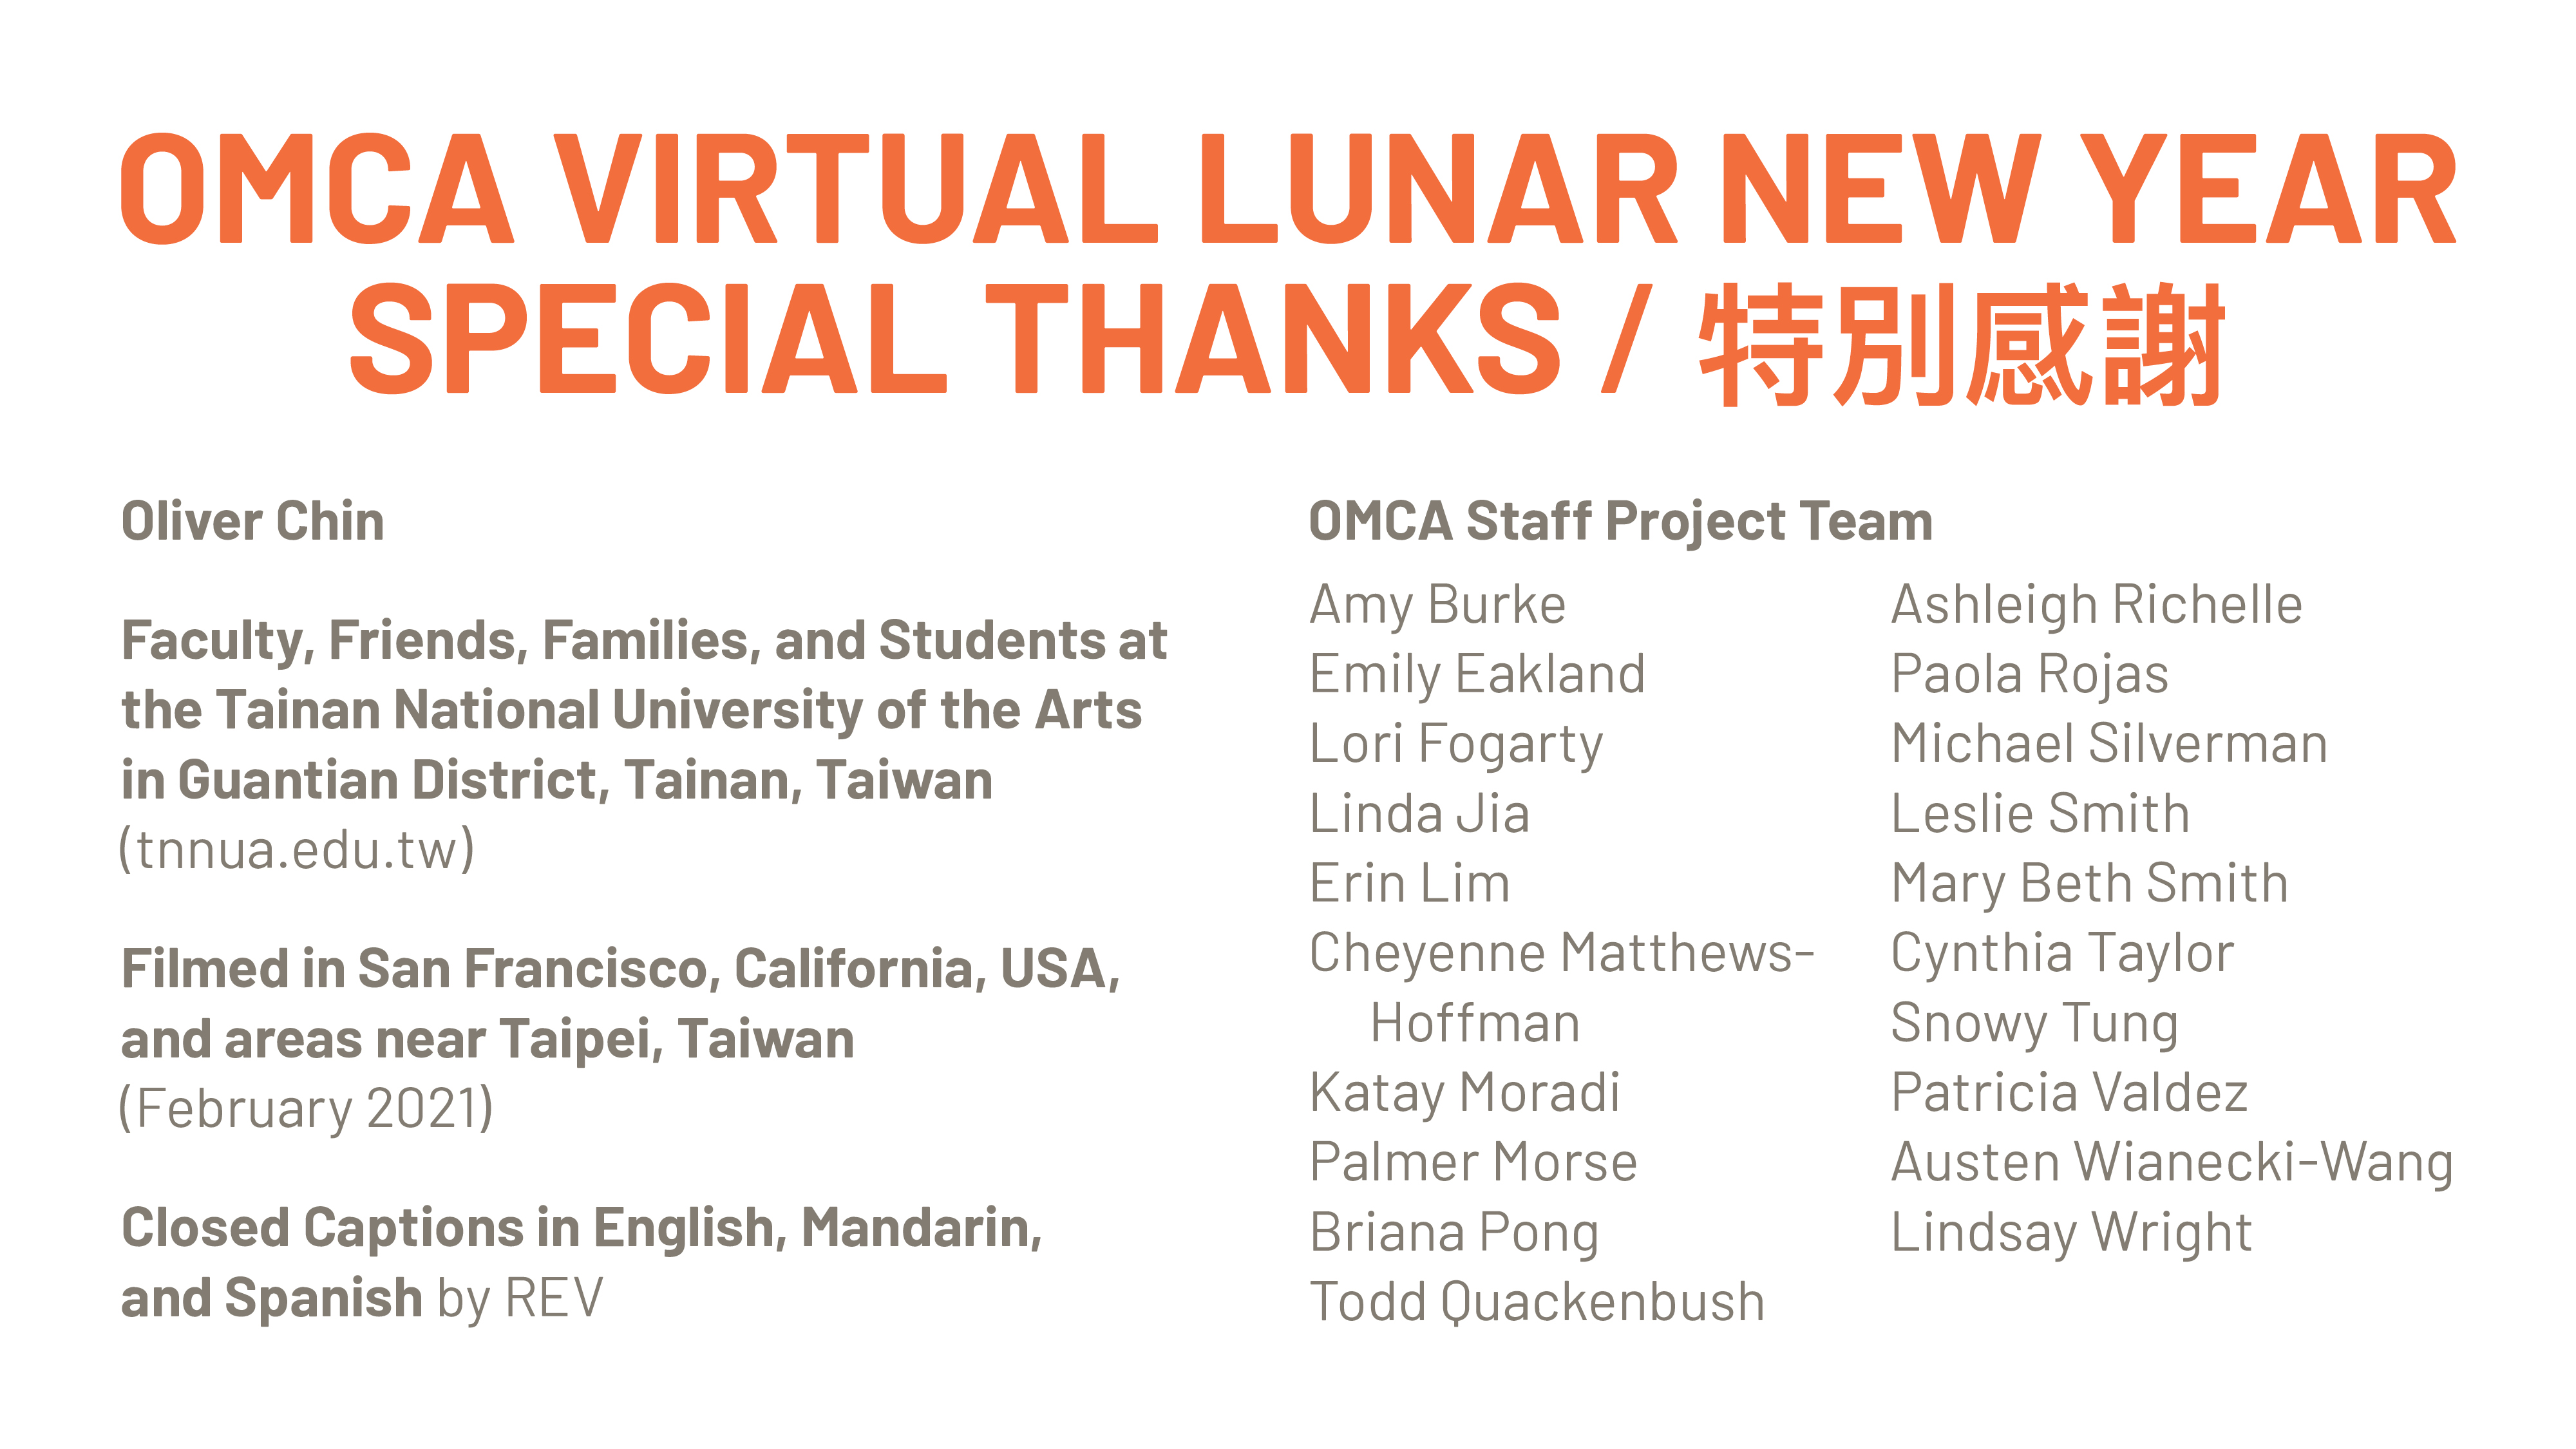 OMCA Virtual Lunar New Year Special thanks message thanking event participants, organizations, and staff